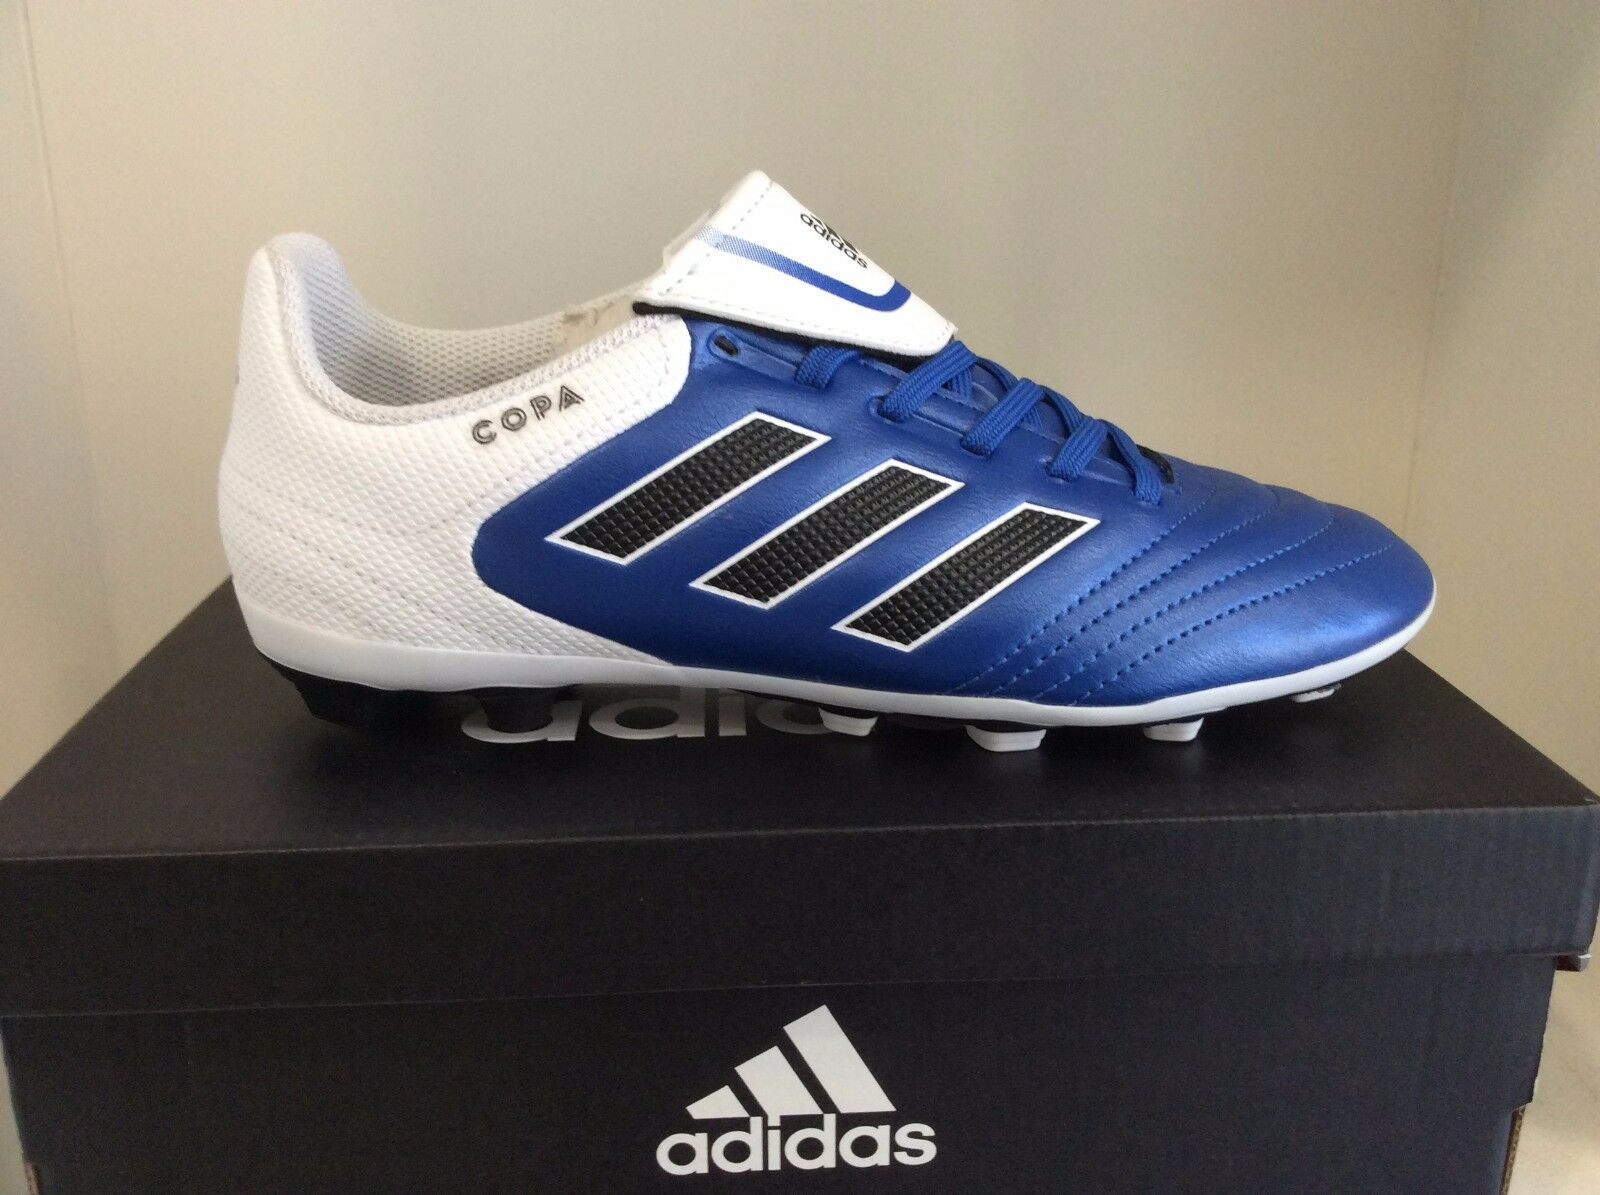 188d1b5f3 Adidas Copa 17.4 FxG J Firm Ground Soccer Cleats bluee and White Youth  Sizes.